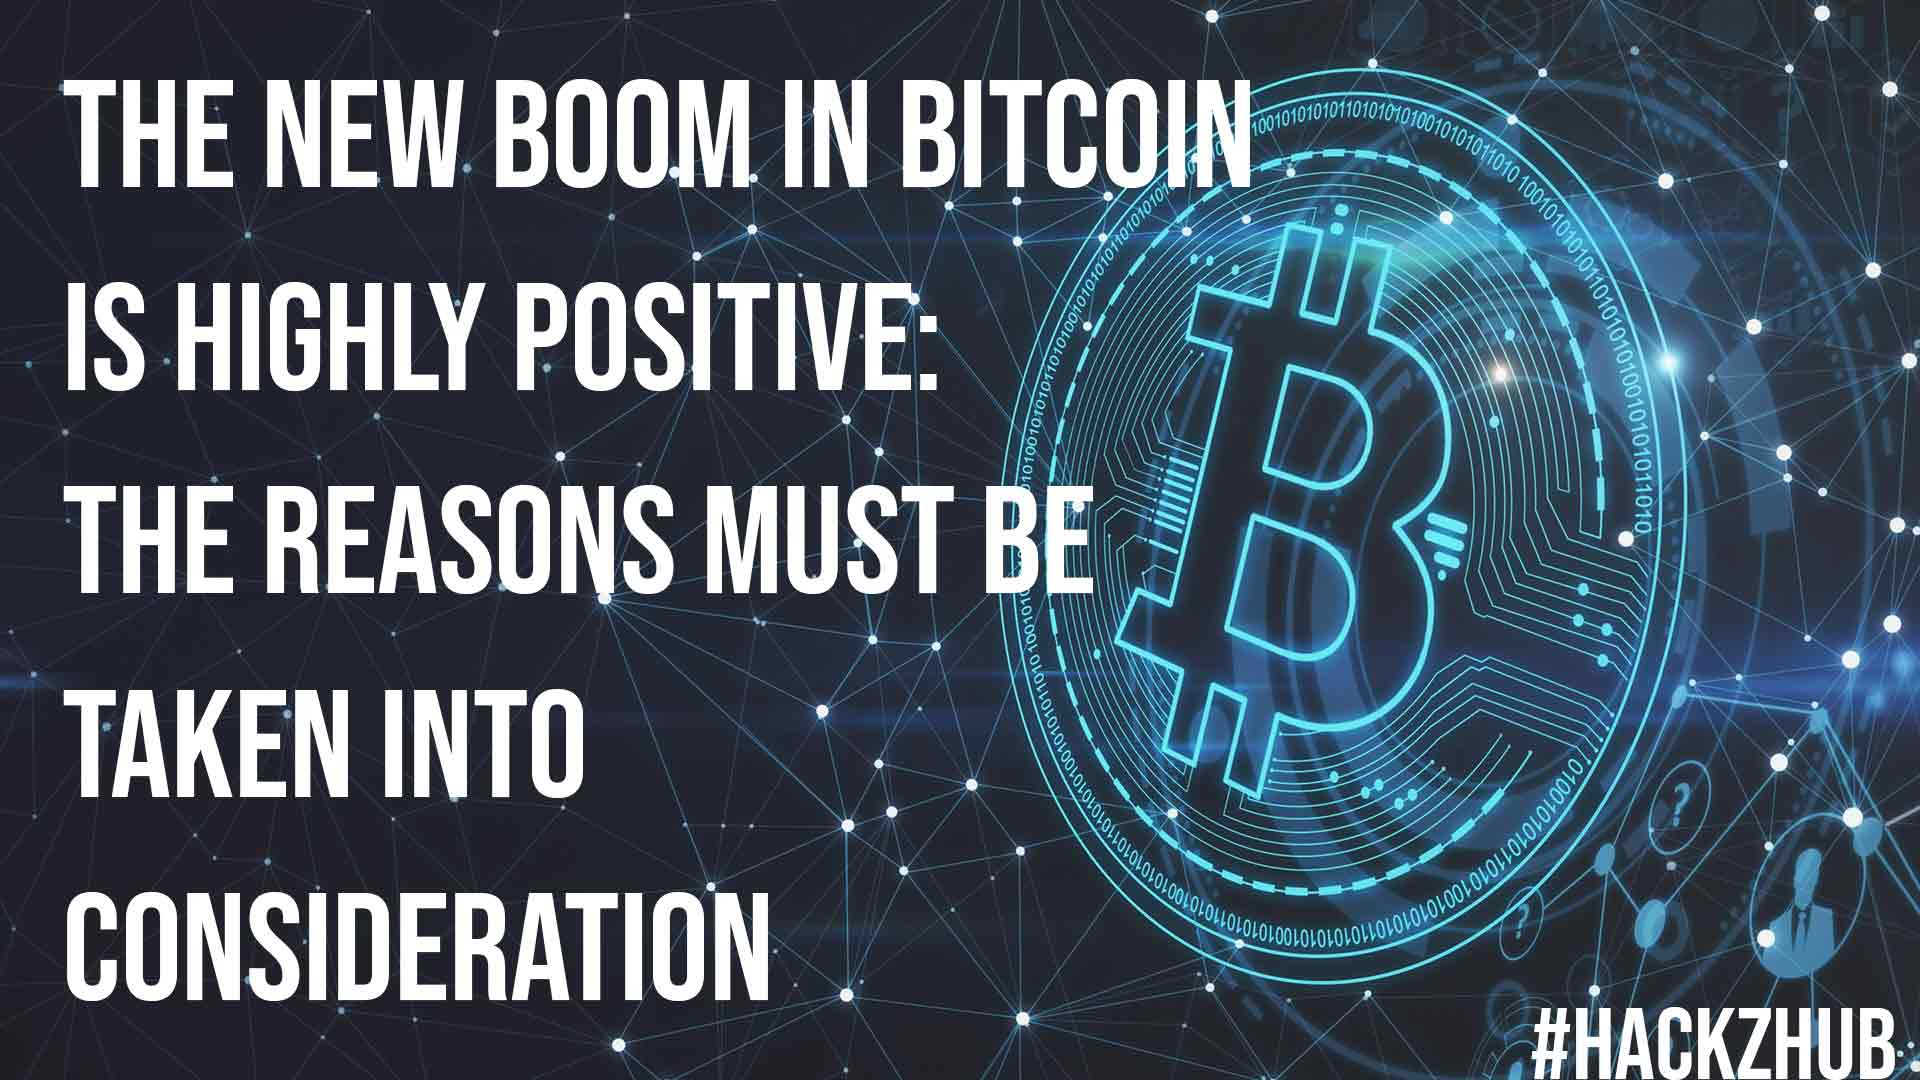 The New Boom in Bitcoin is Highly Positive